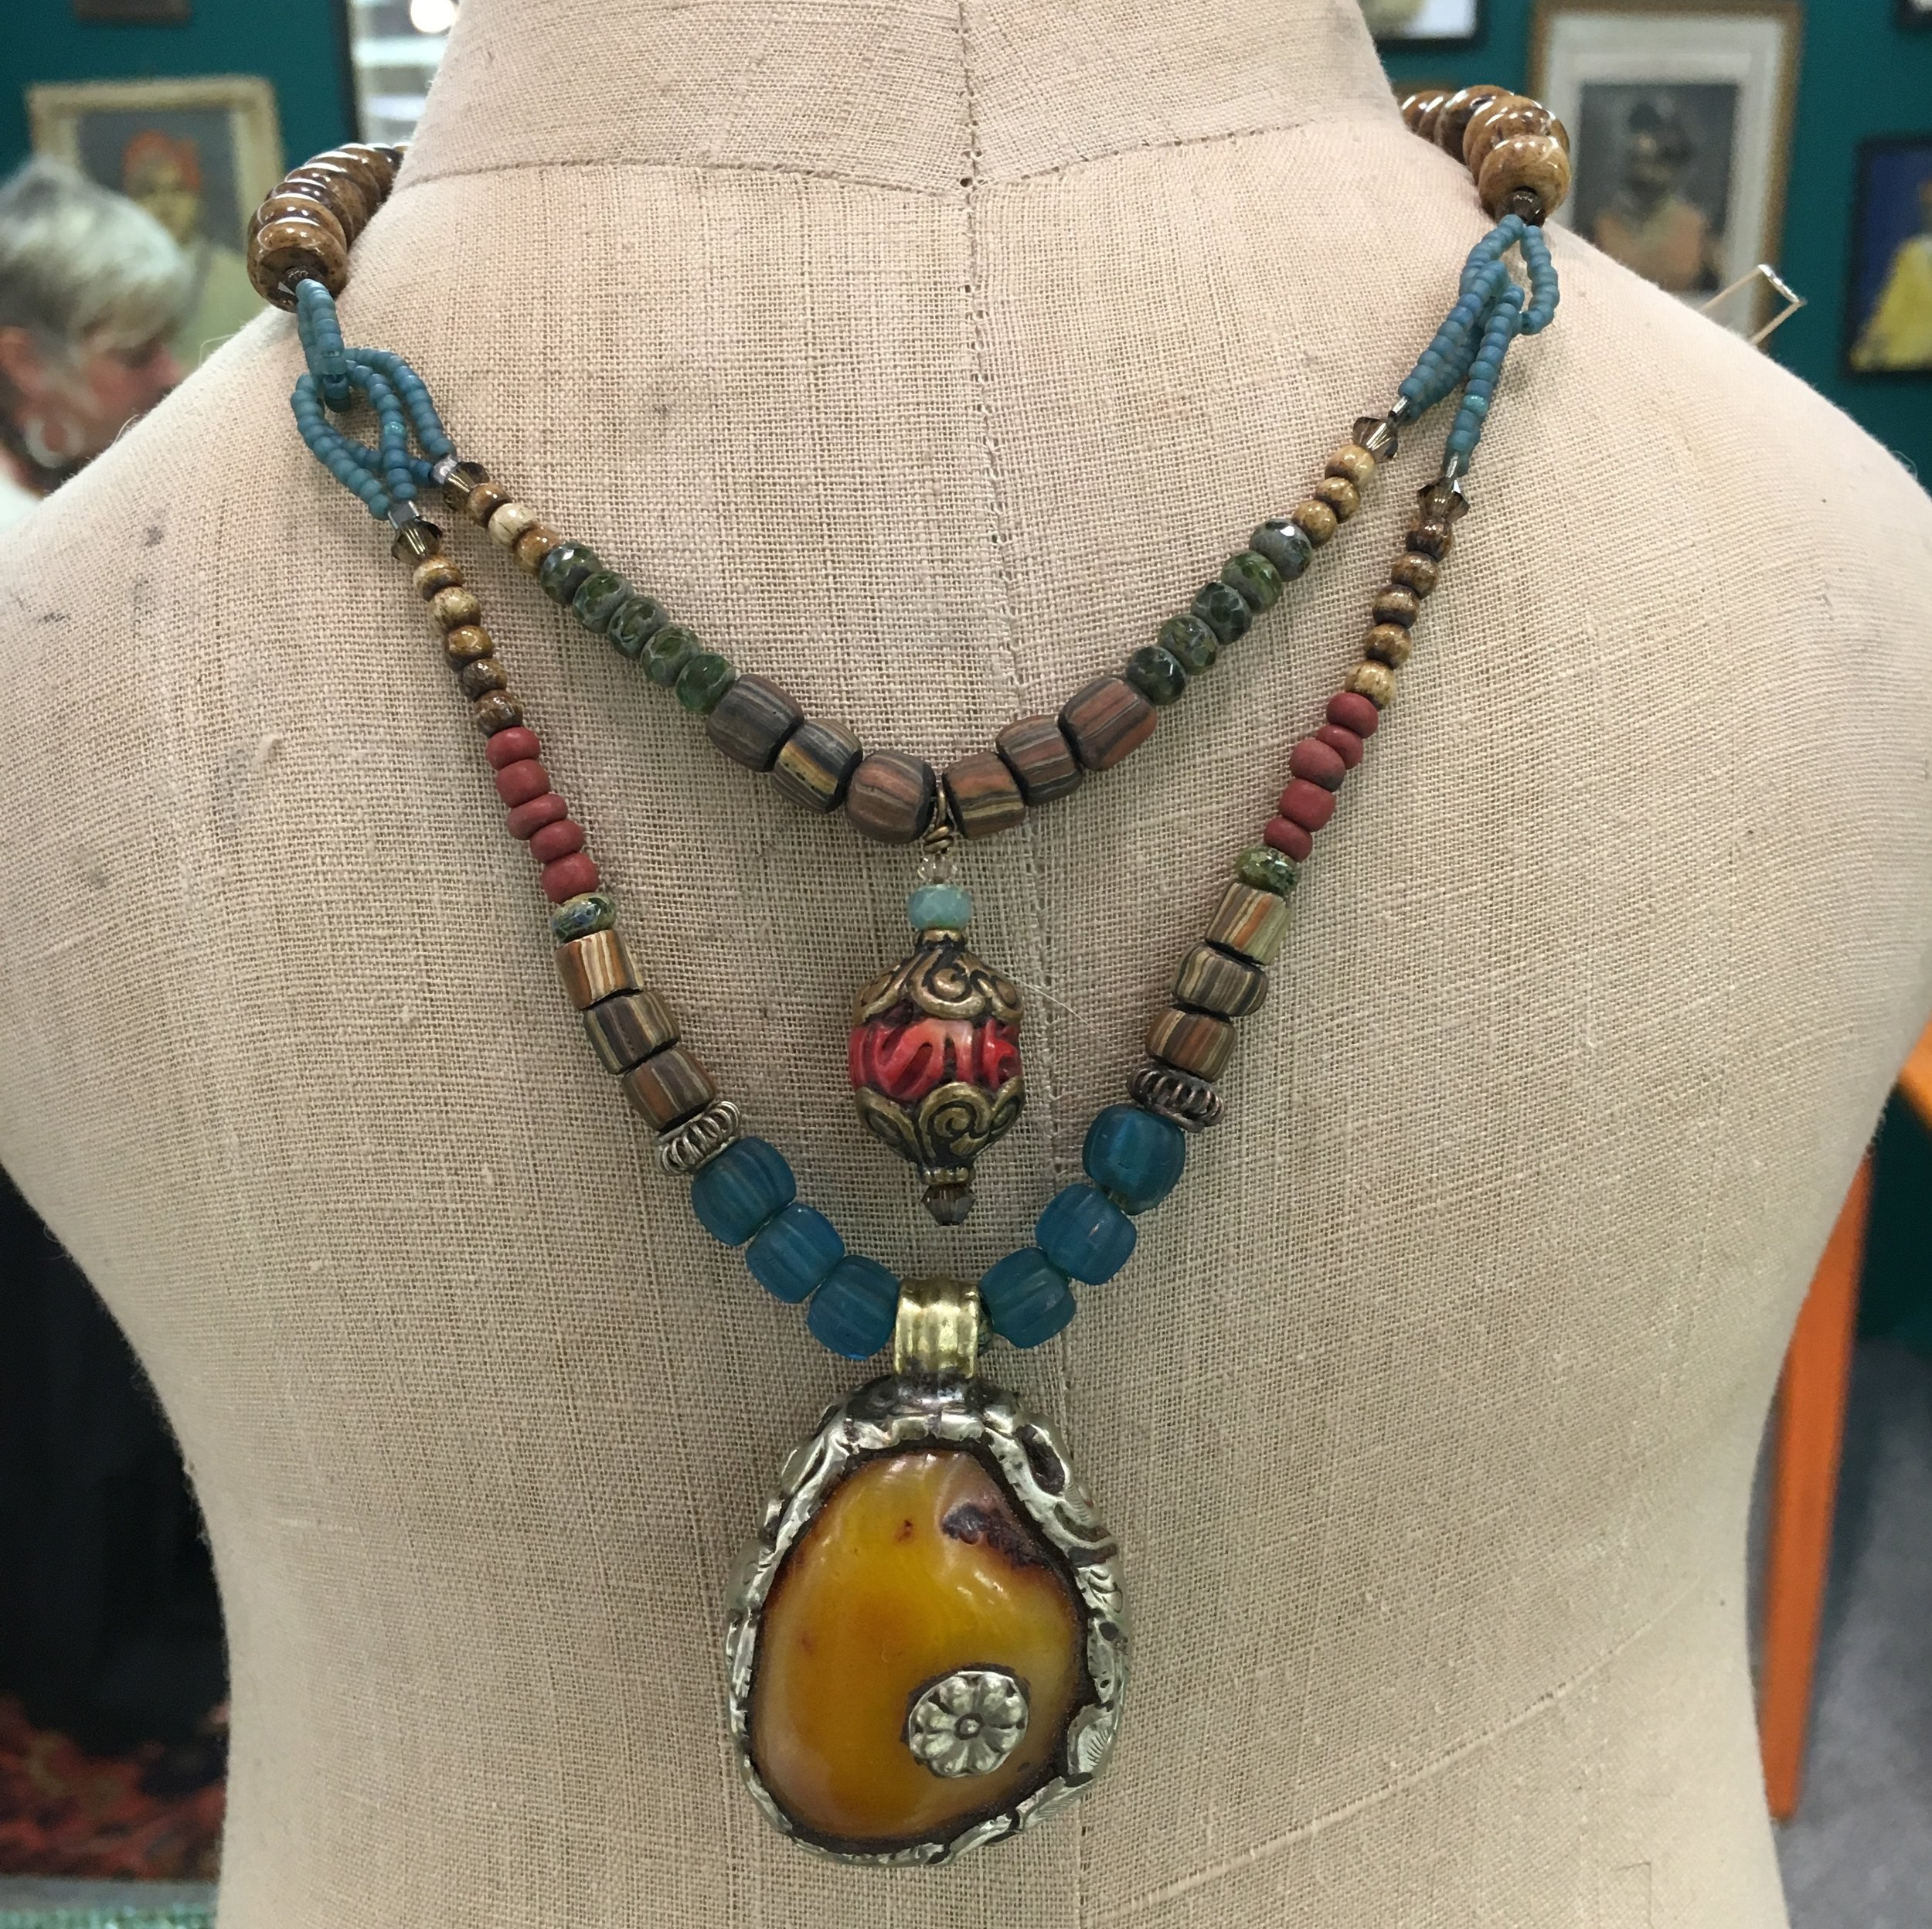 A natural stone from Nepal exquisitely framed and combined with beads from Indonesia, Ghana, Nepal and the Czech